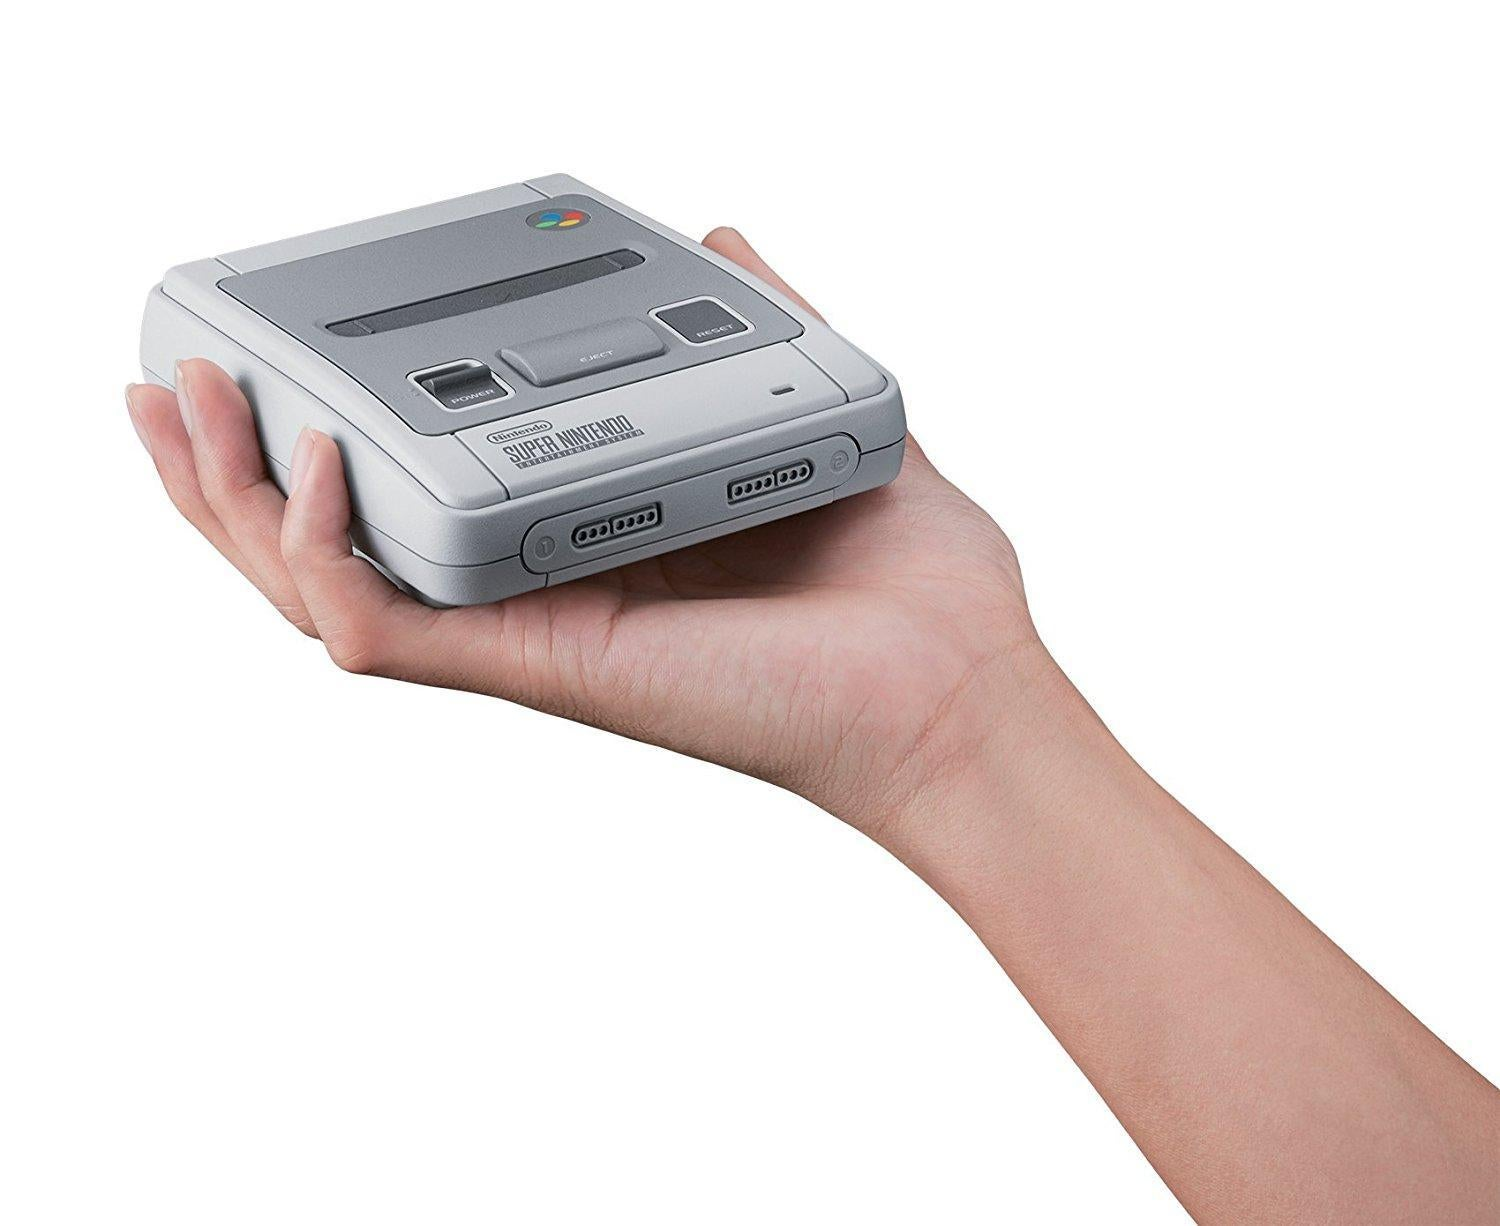 NES and SNES Classic Consoles to Stop Being Sold, Nintendo Confirms